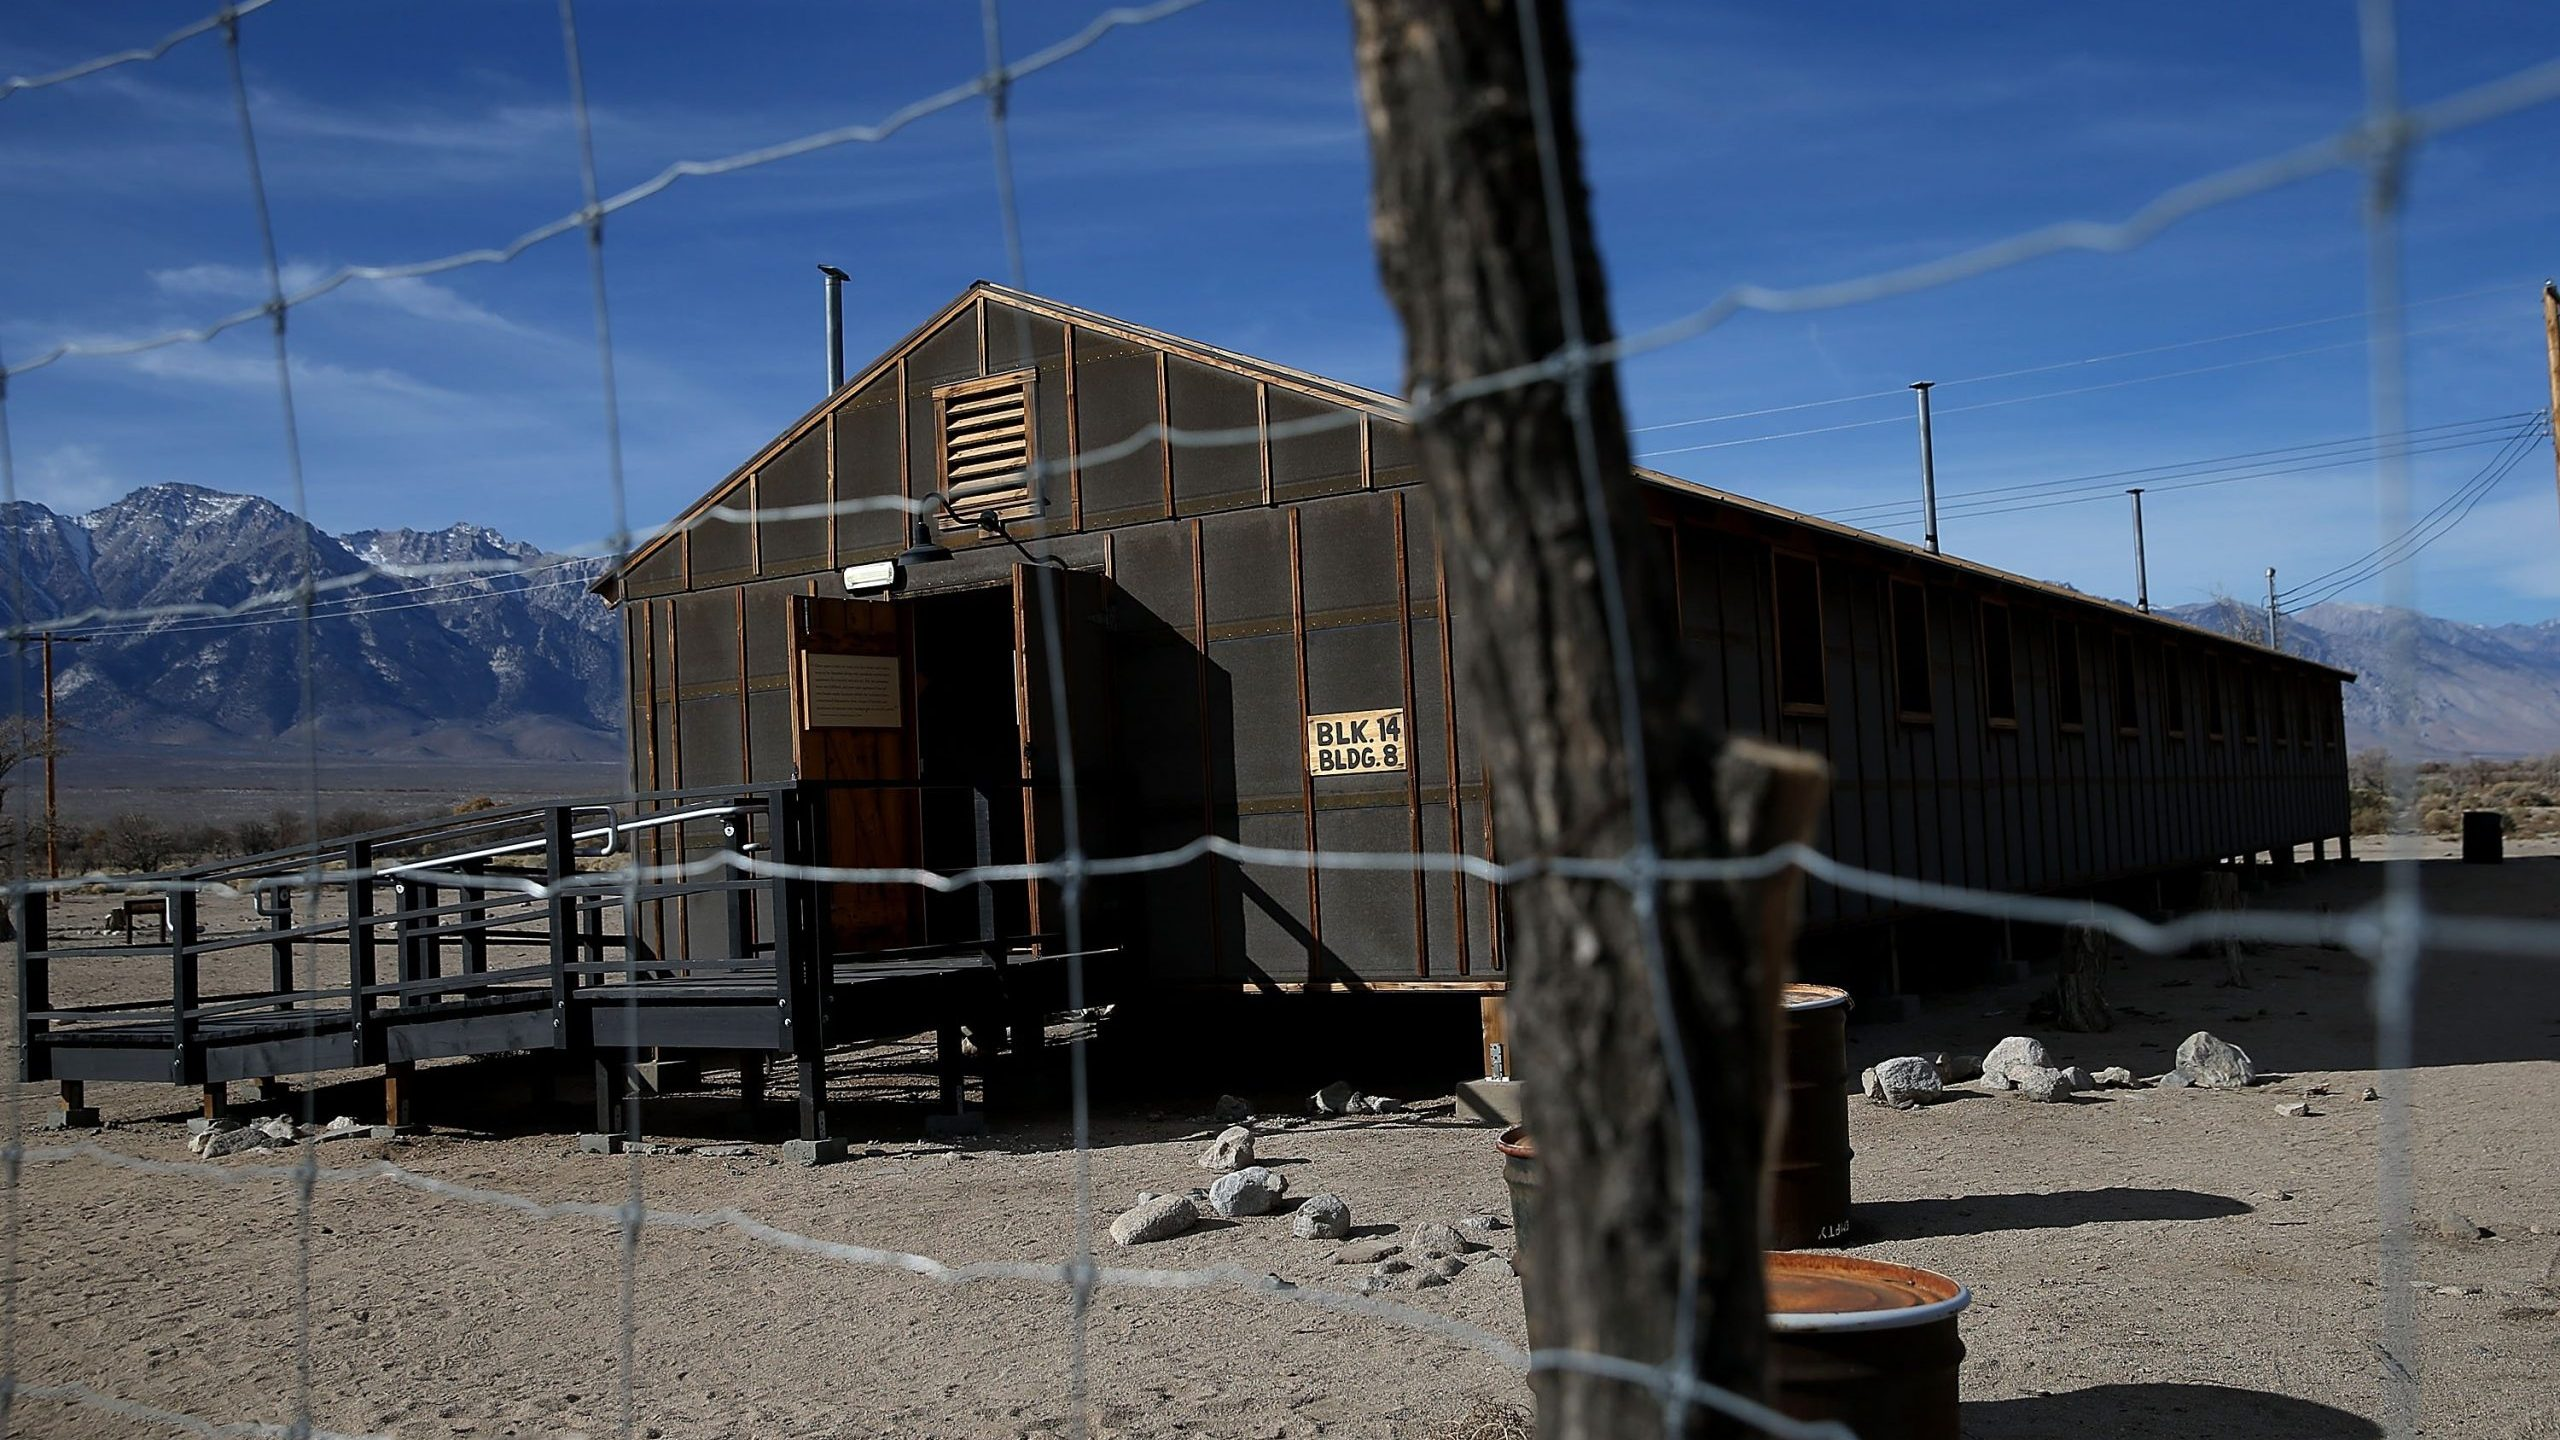 A replica of internment camp barracks stands at Manzanar National Historic Site on Dec. 9, 2015, near Independence, Calif. (Credit: Justin Sullivan/Getty Images)